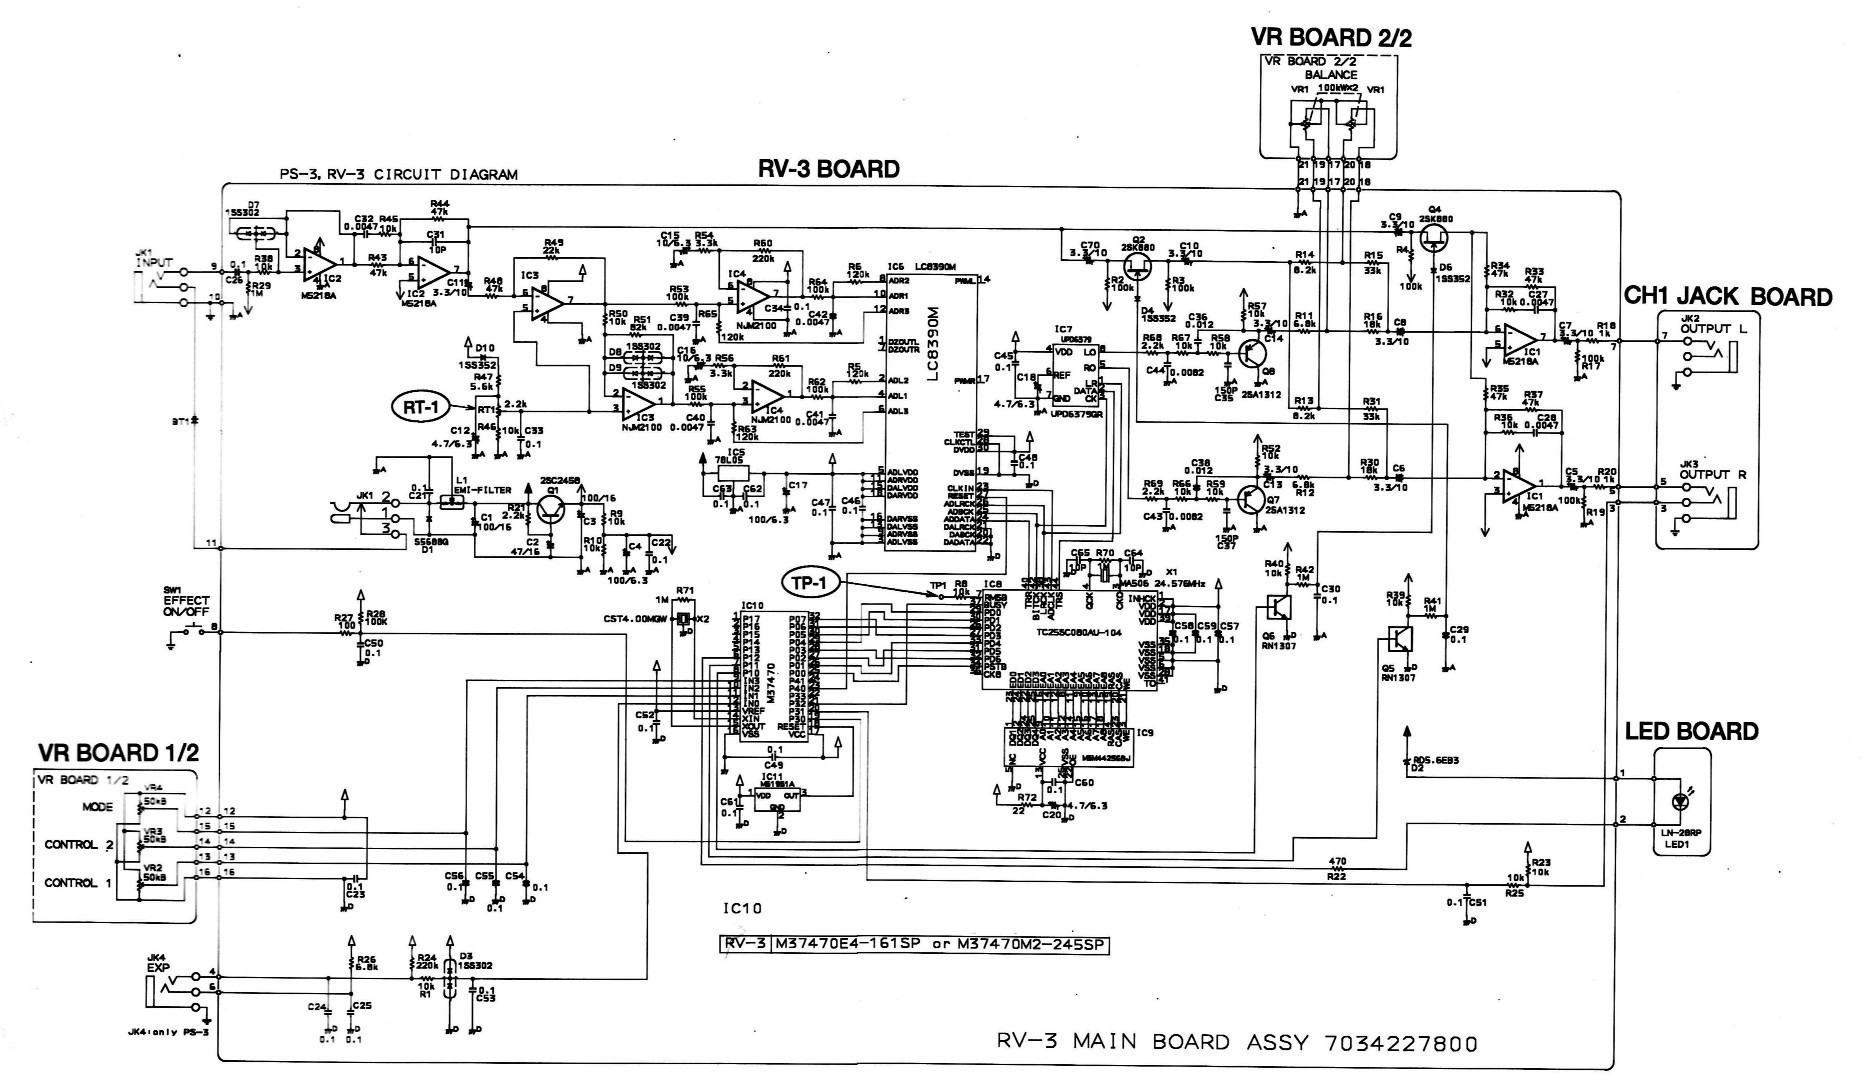 Basic guitar wiring diagram new wiring diagram image guitar wiring diagram creator fresh schematics asfbconference2016 Image collections